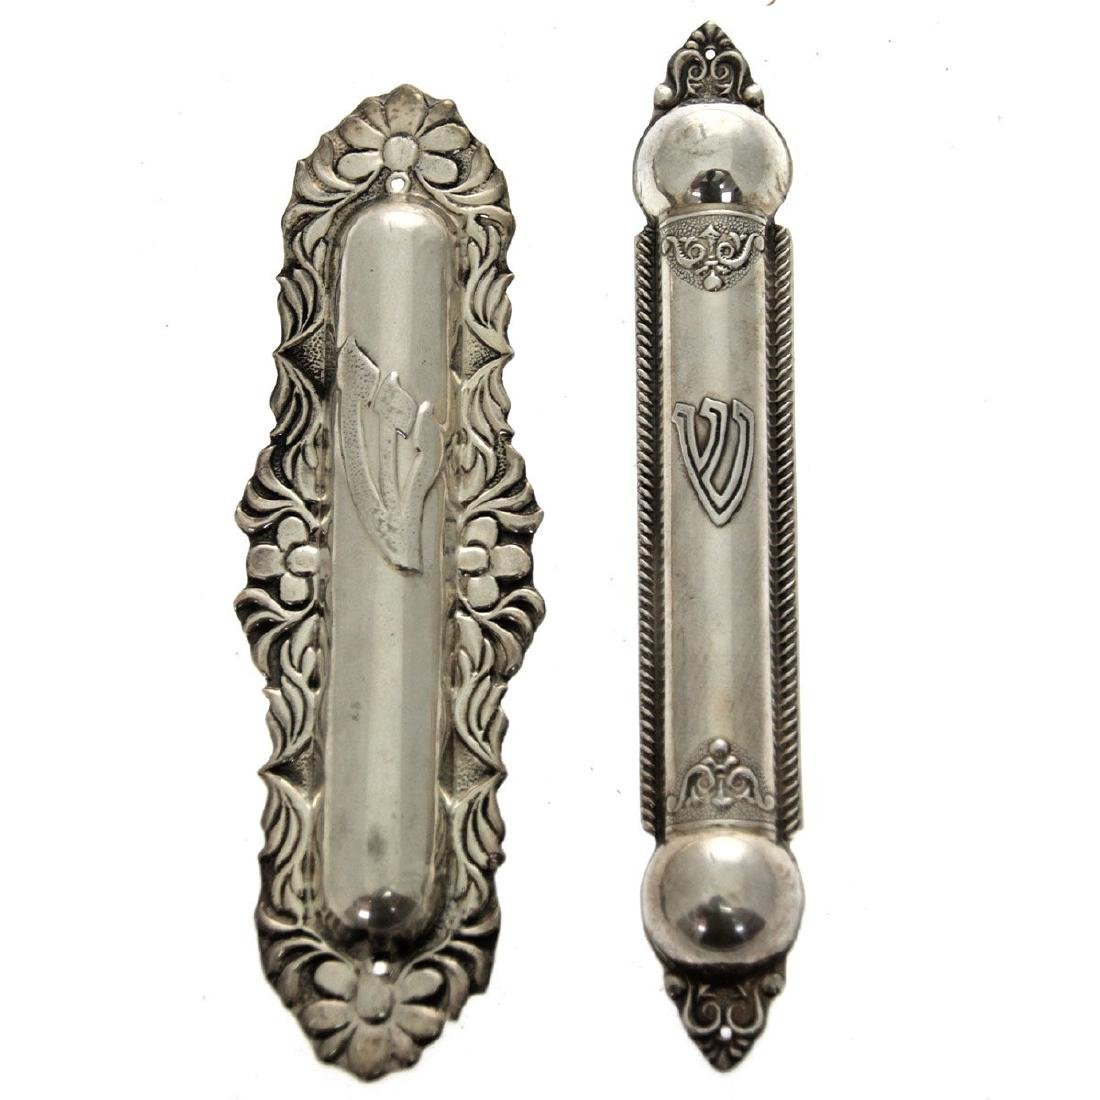 Two Sterling Silver Mezuzah Cases, Judaica.